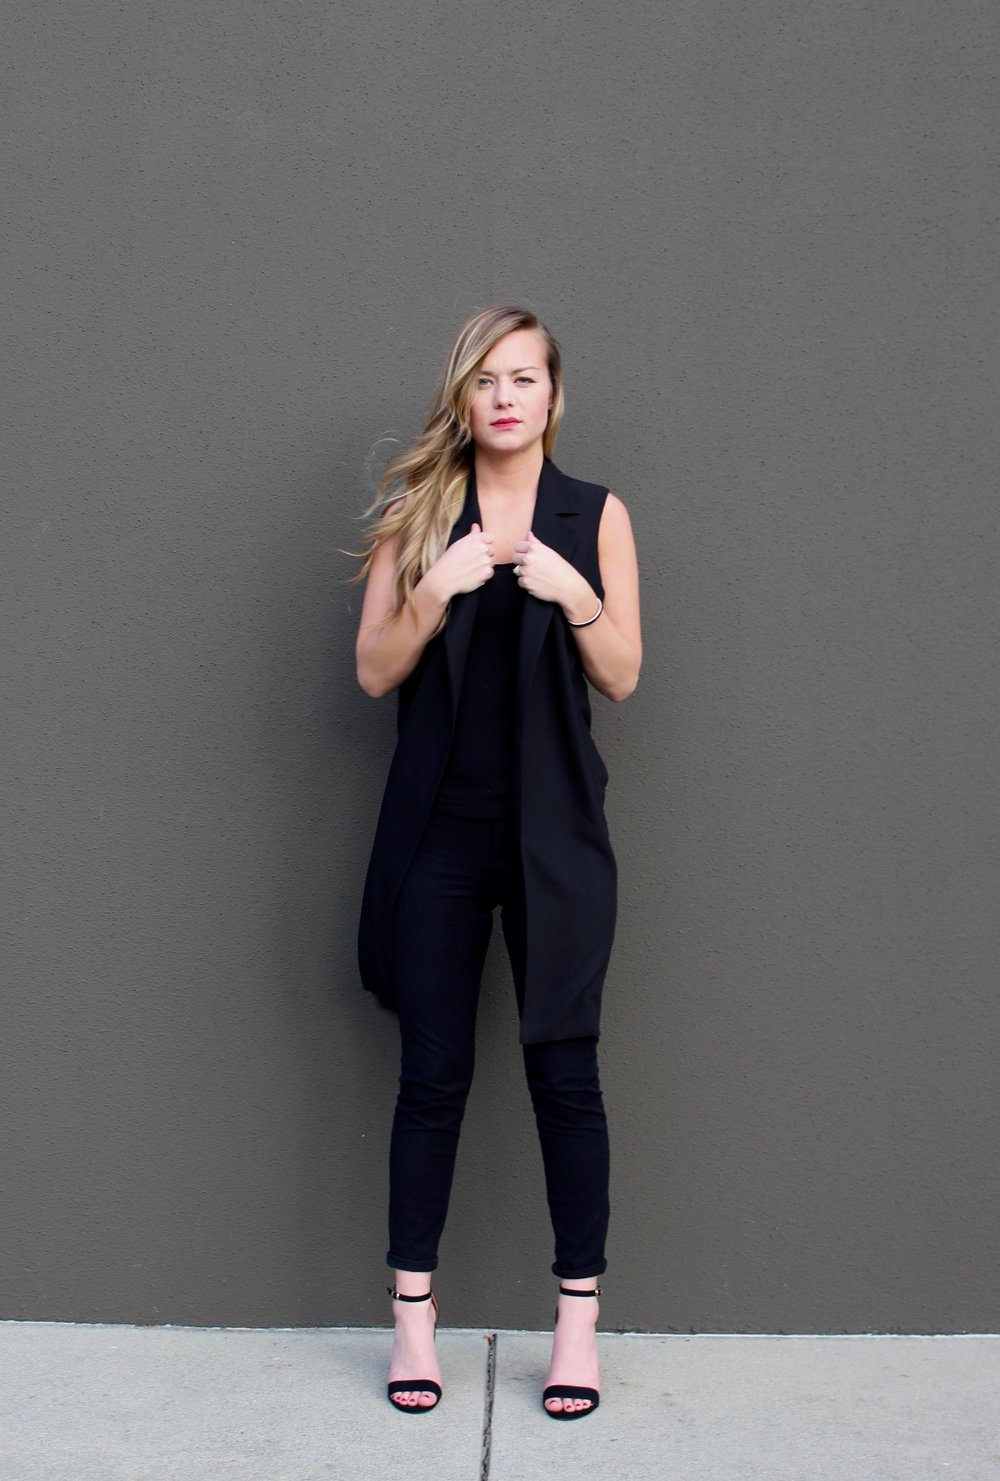 Sleeveless vest tailored pants and open toed heels